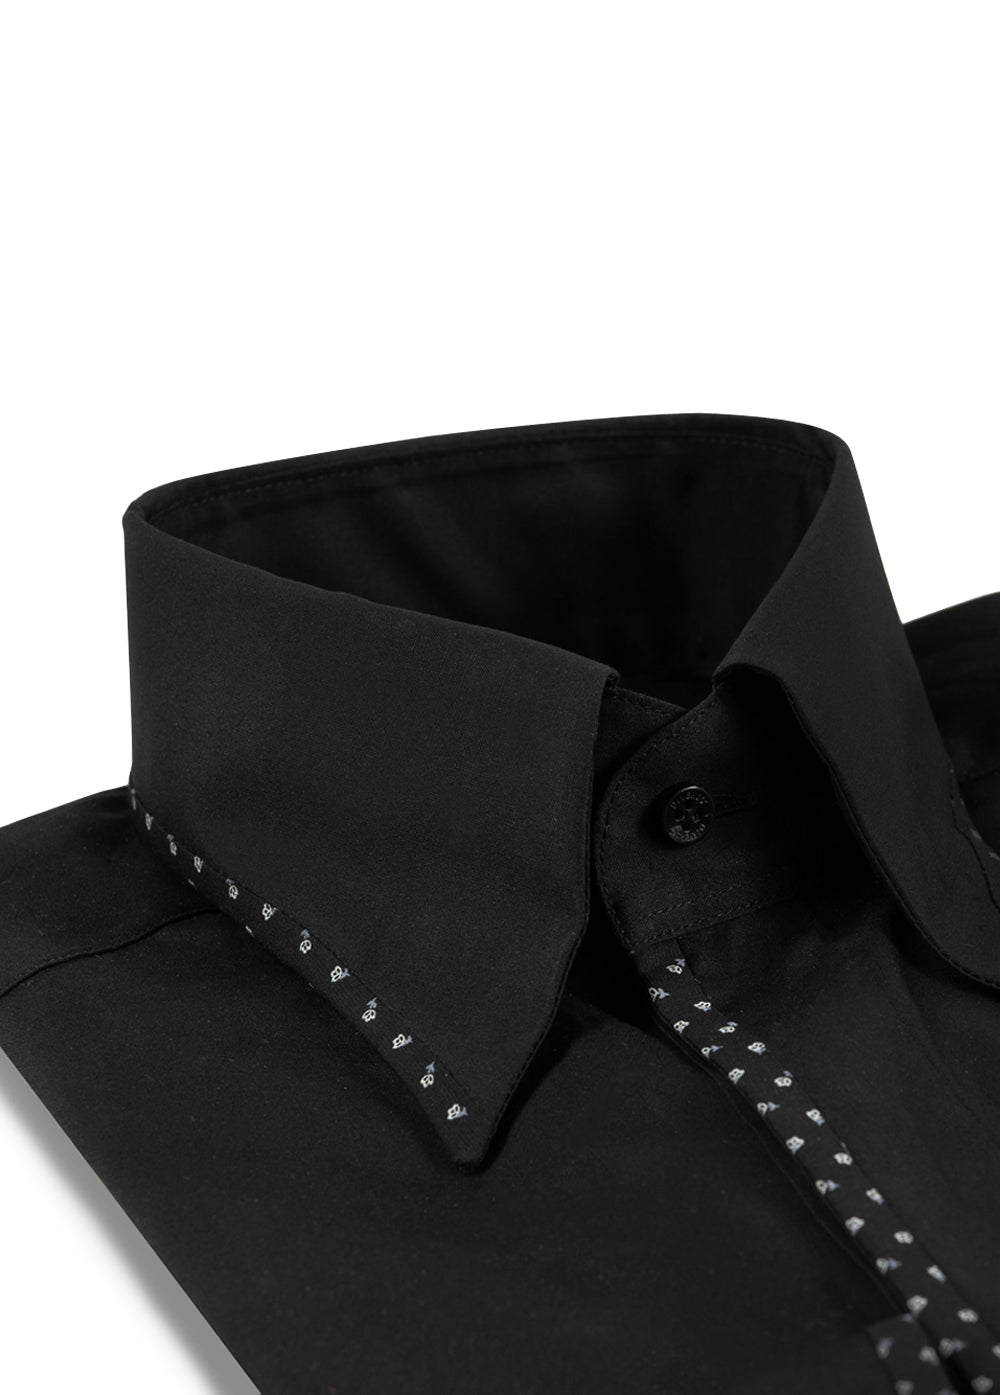 Black & Floral Edge Trim Shirt